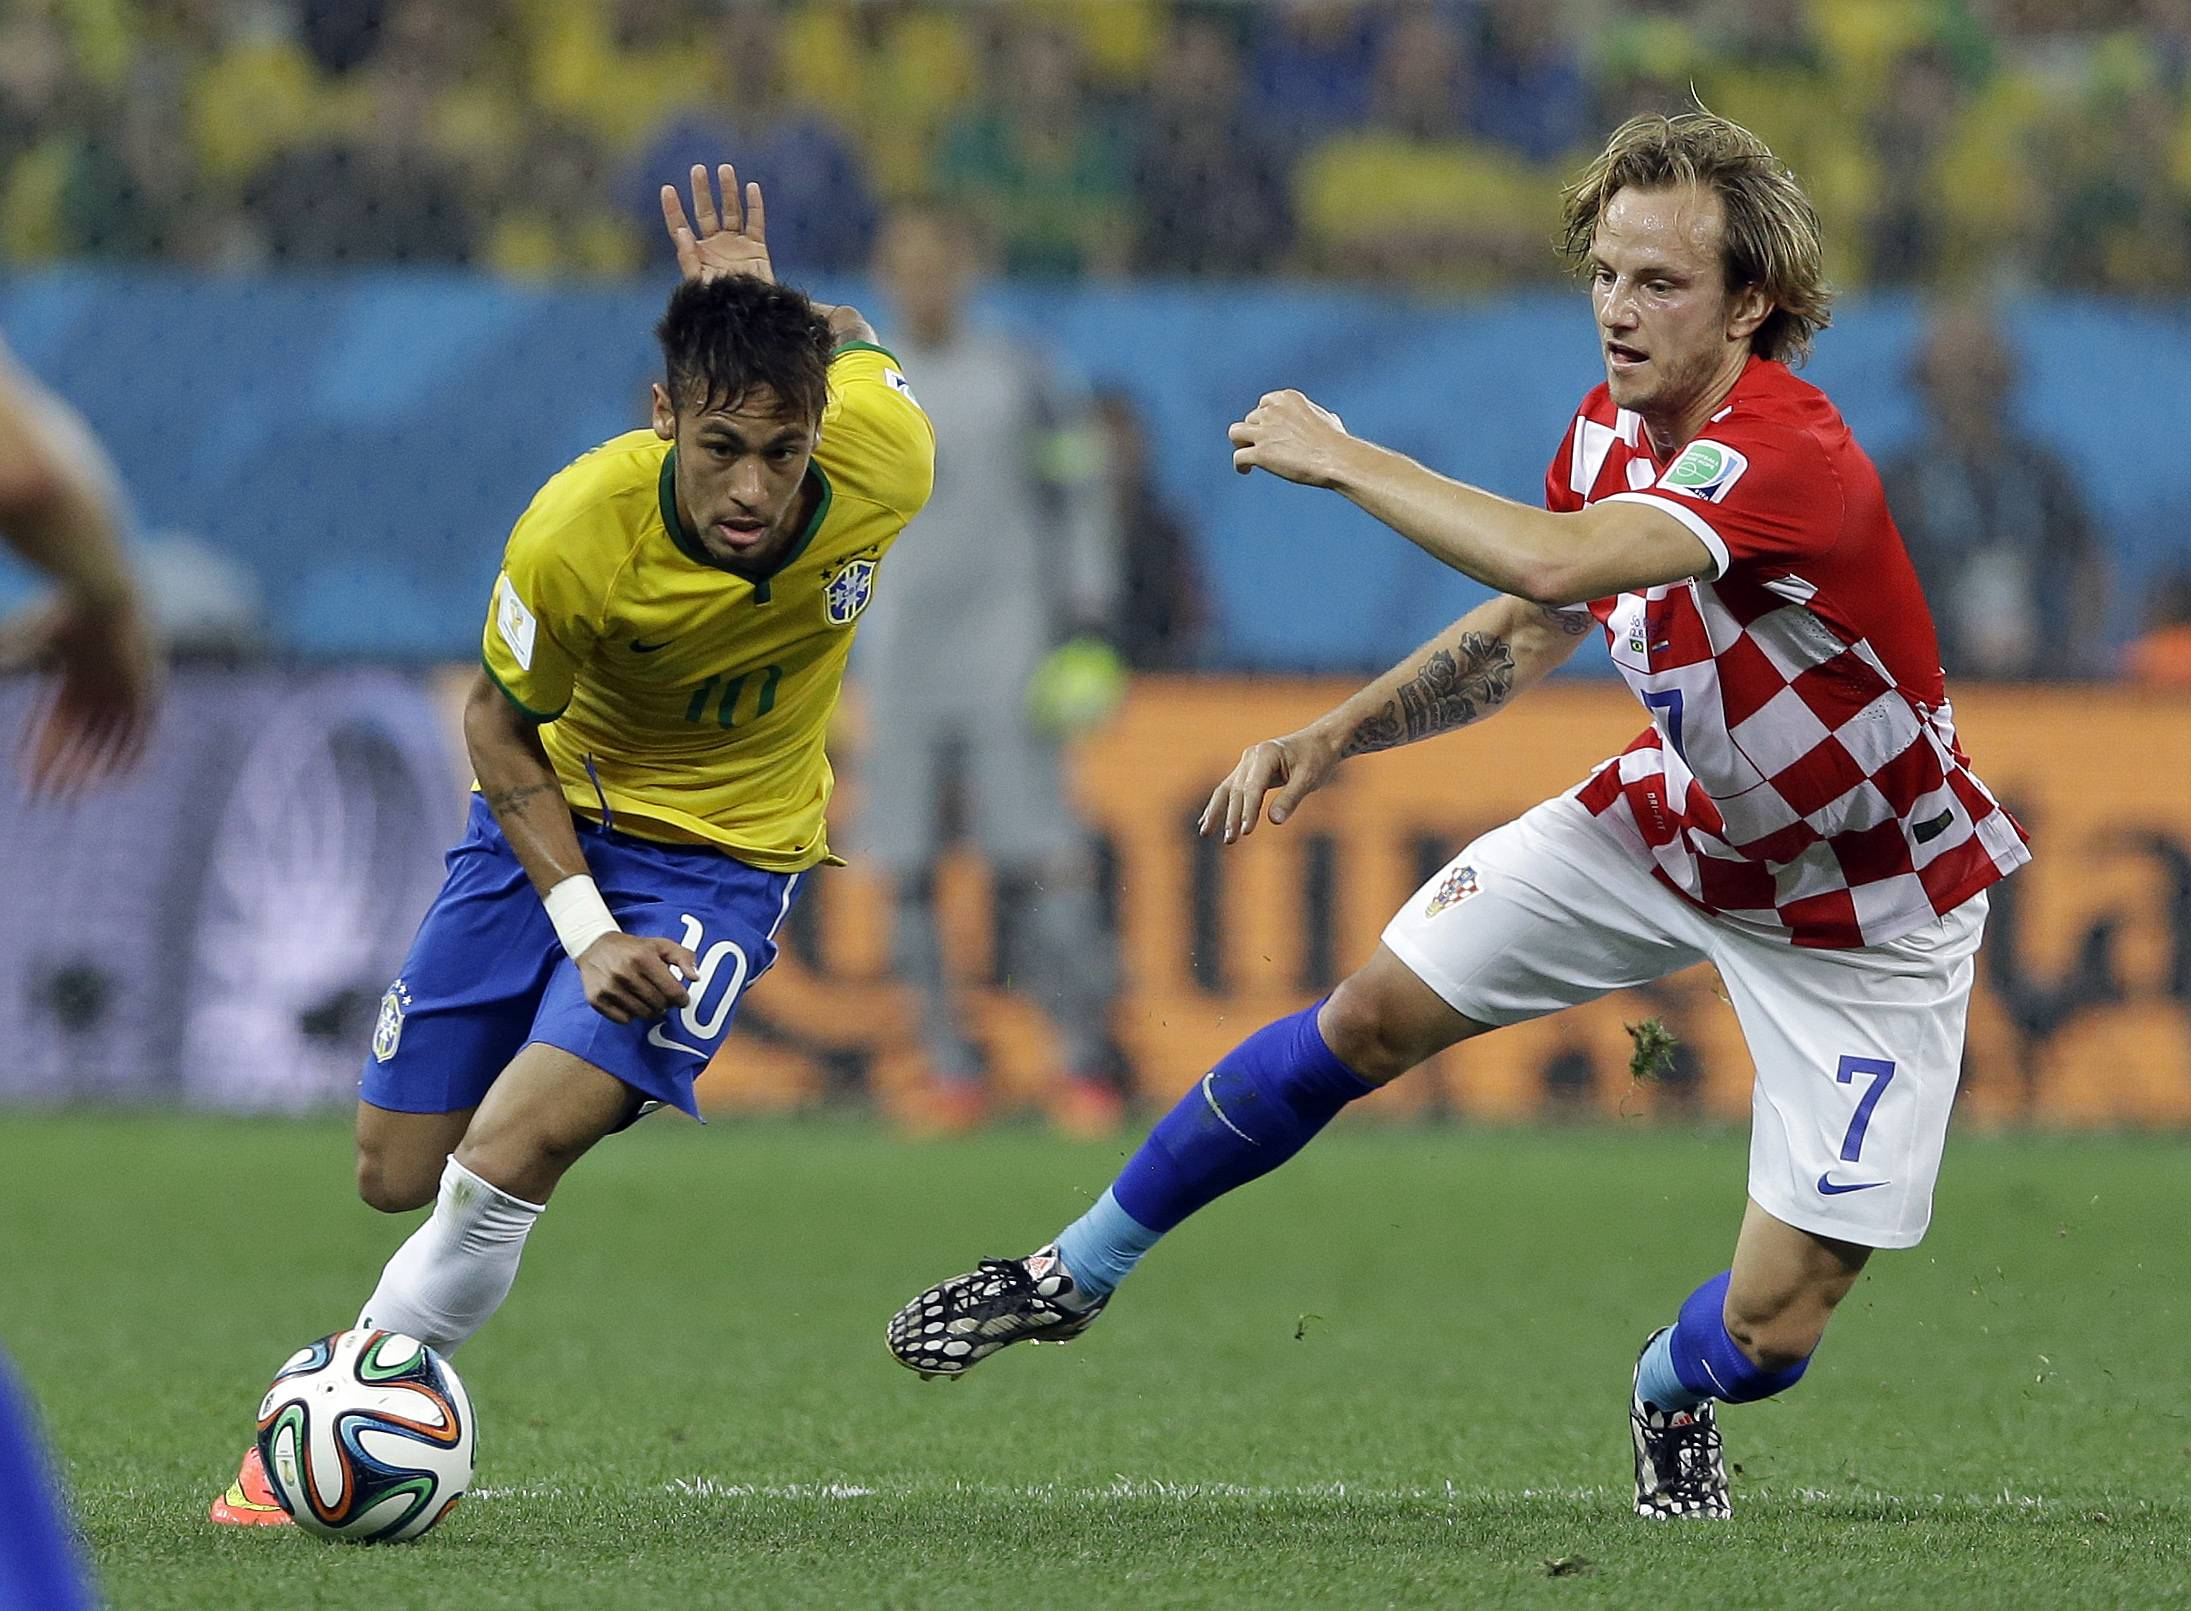 Brazil's Neymar, left, gets away from Croatia's Ivan Rakitic  during the group A World Cup soccer match between Brazil and Croatia, the opening game of the tournament, in the Itaquerao Stadium in Sao Paulo, Brazil.